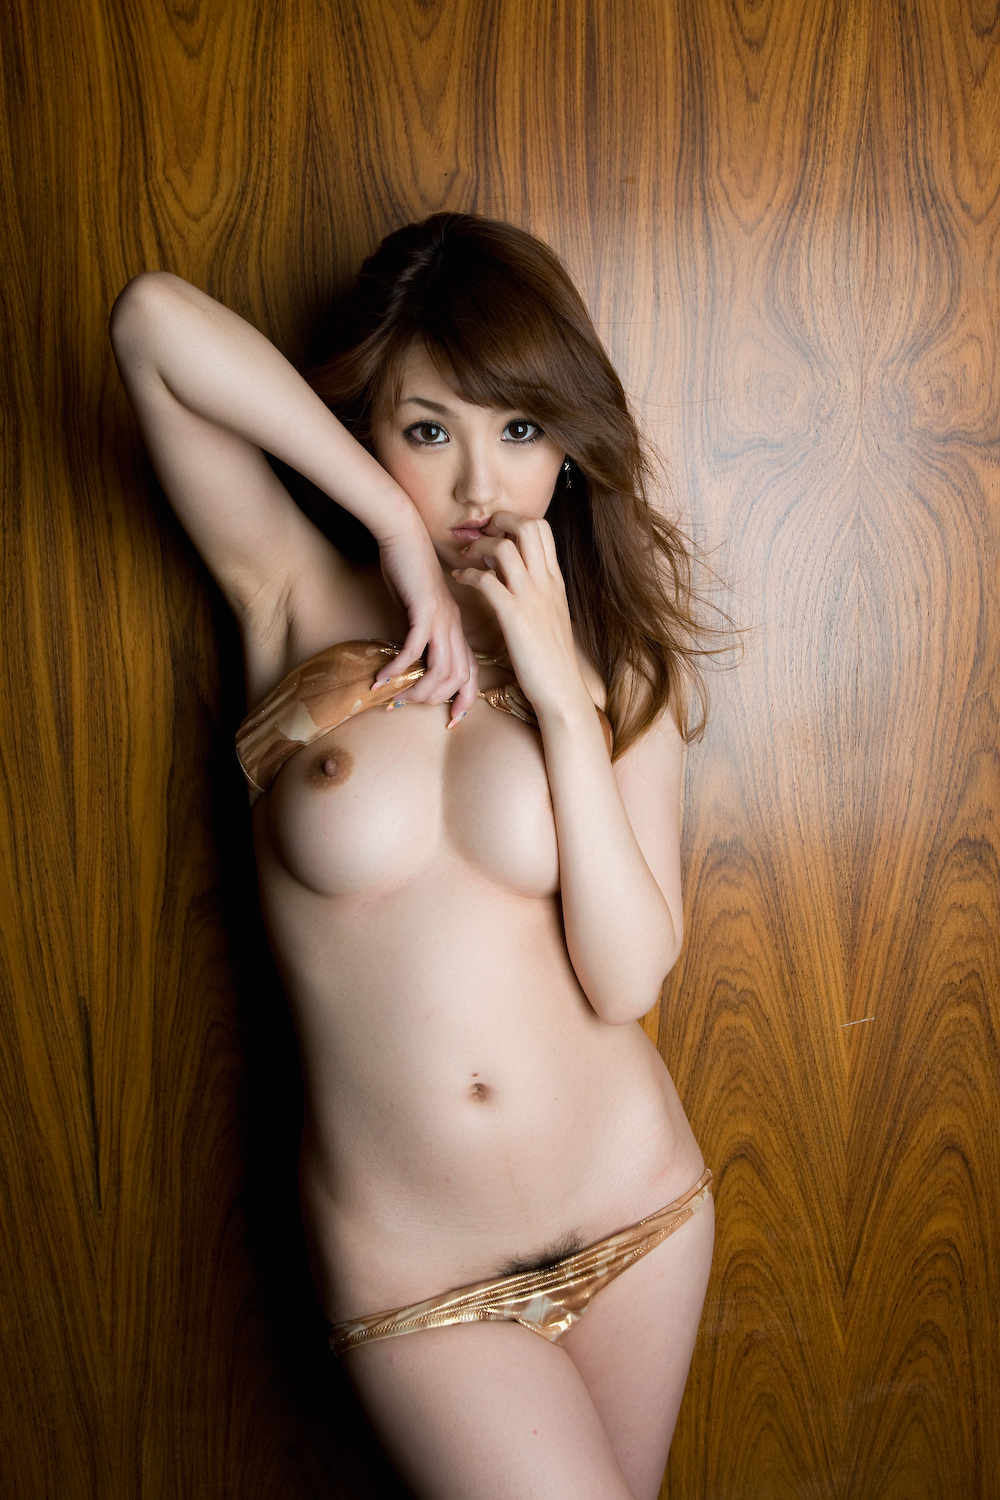 stewardess fucked airline pilot uniform porn #asian#gorgeous#sexy#hot#boobs#nipples#pussy#legs#look